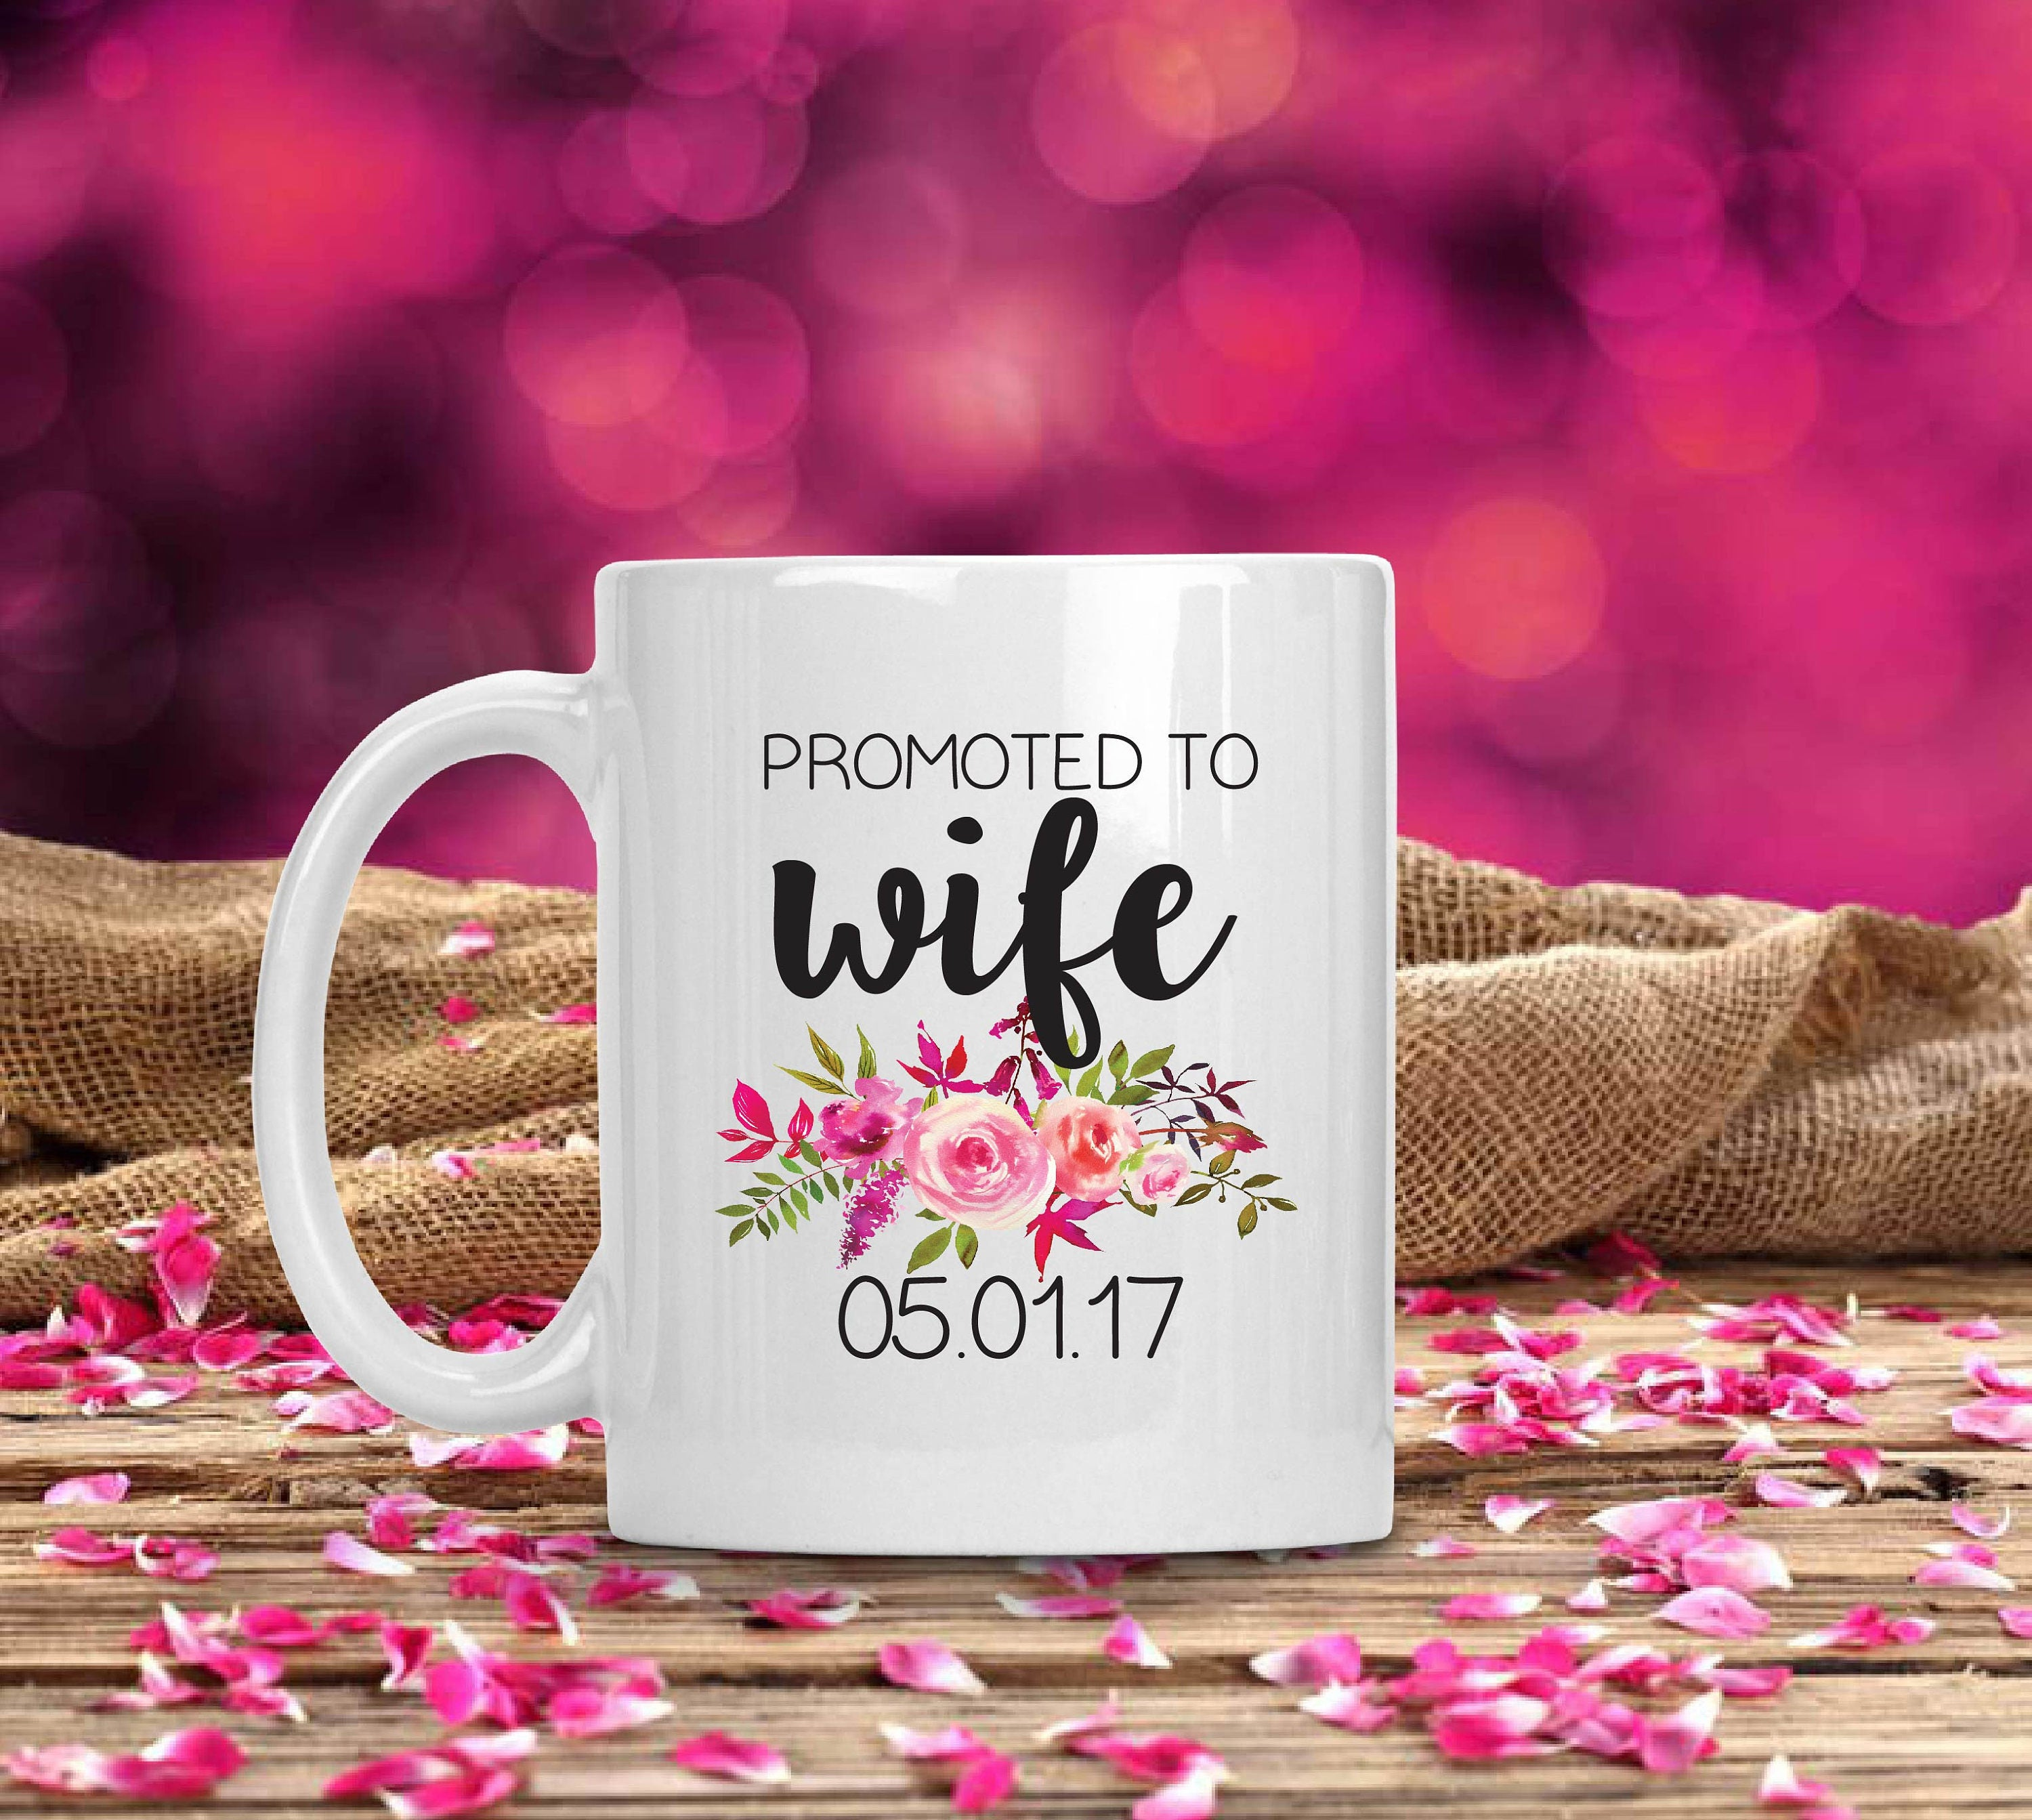 Promoted to Wife mug wifey mug newlywed mug wife mug coffee | Etsy